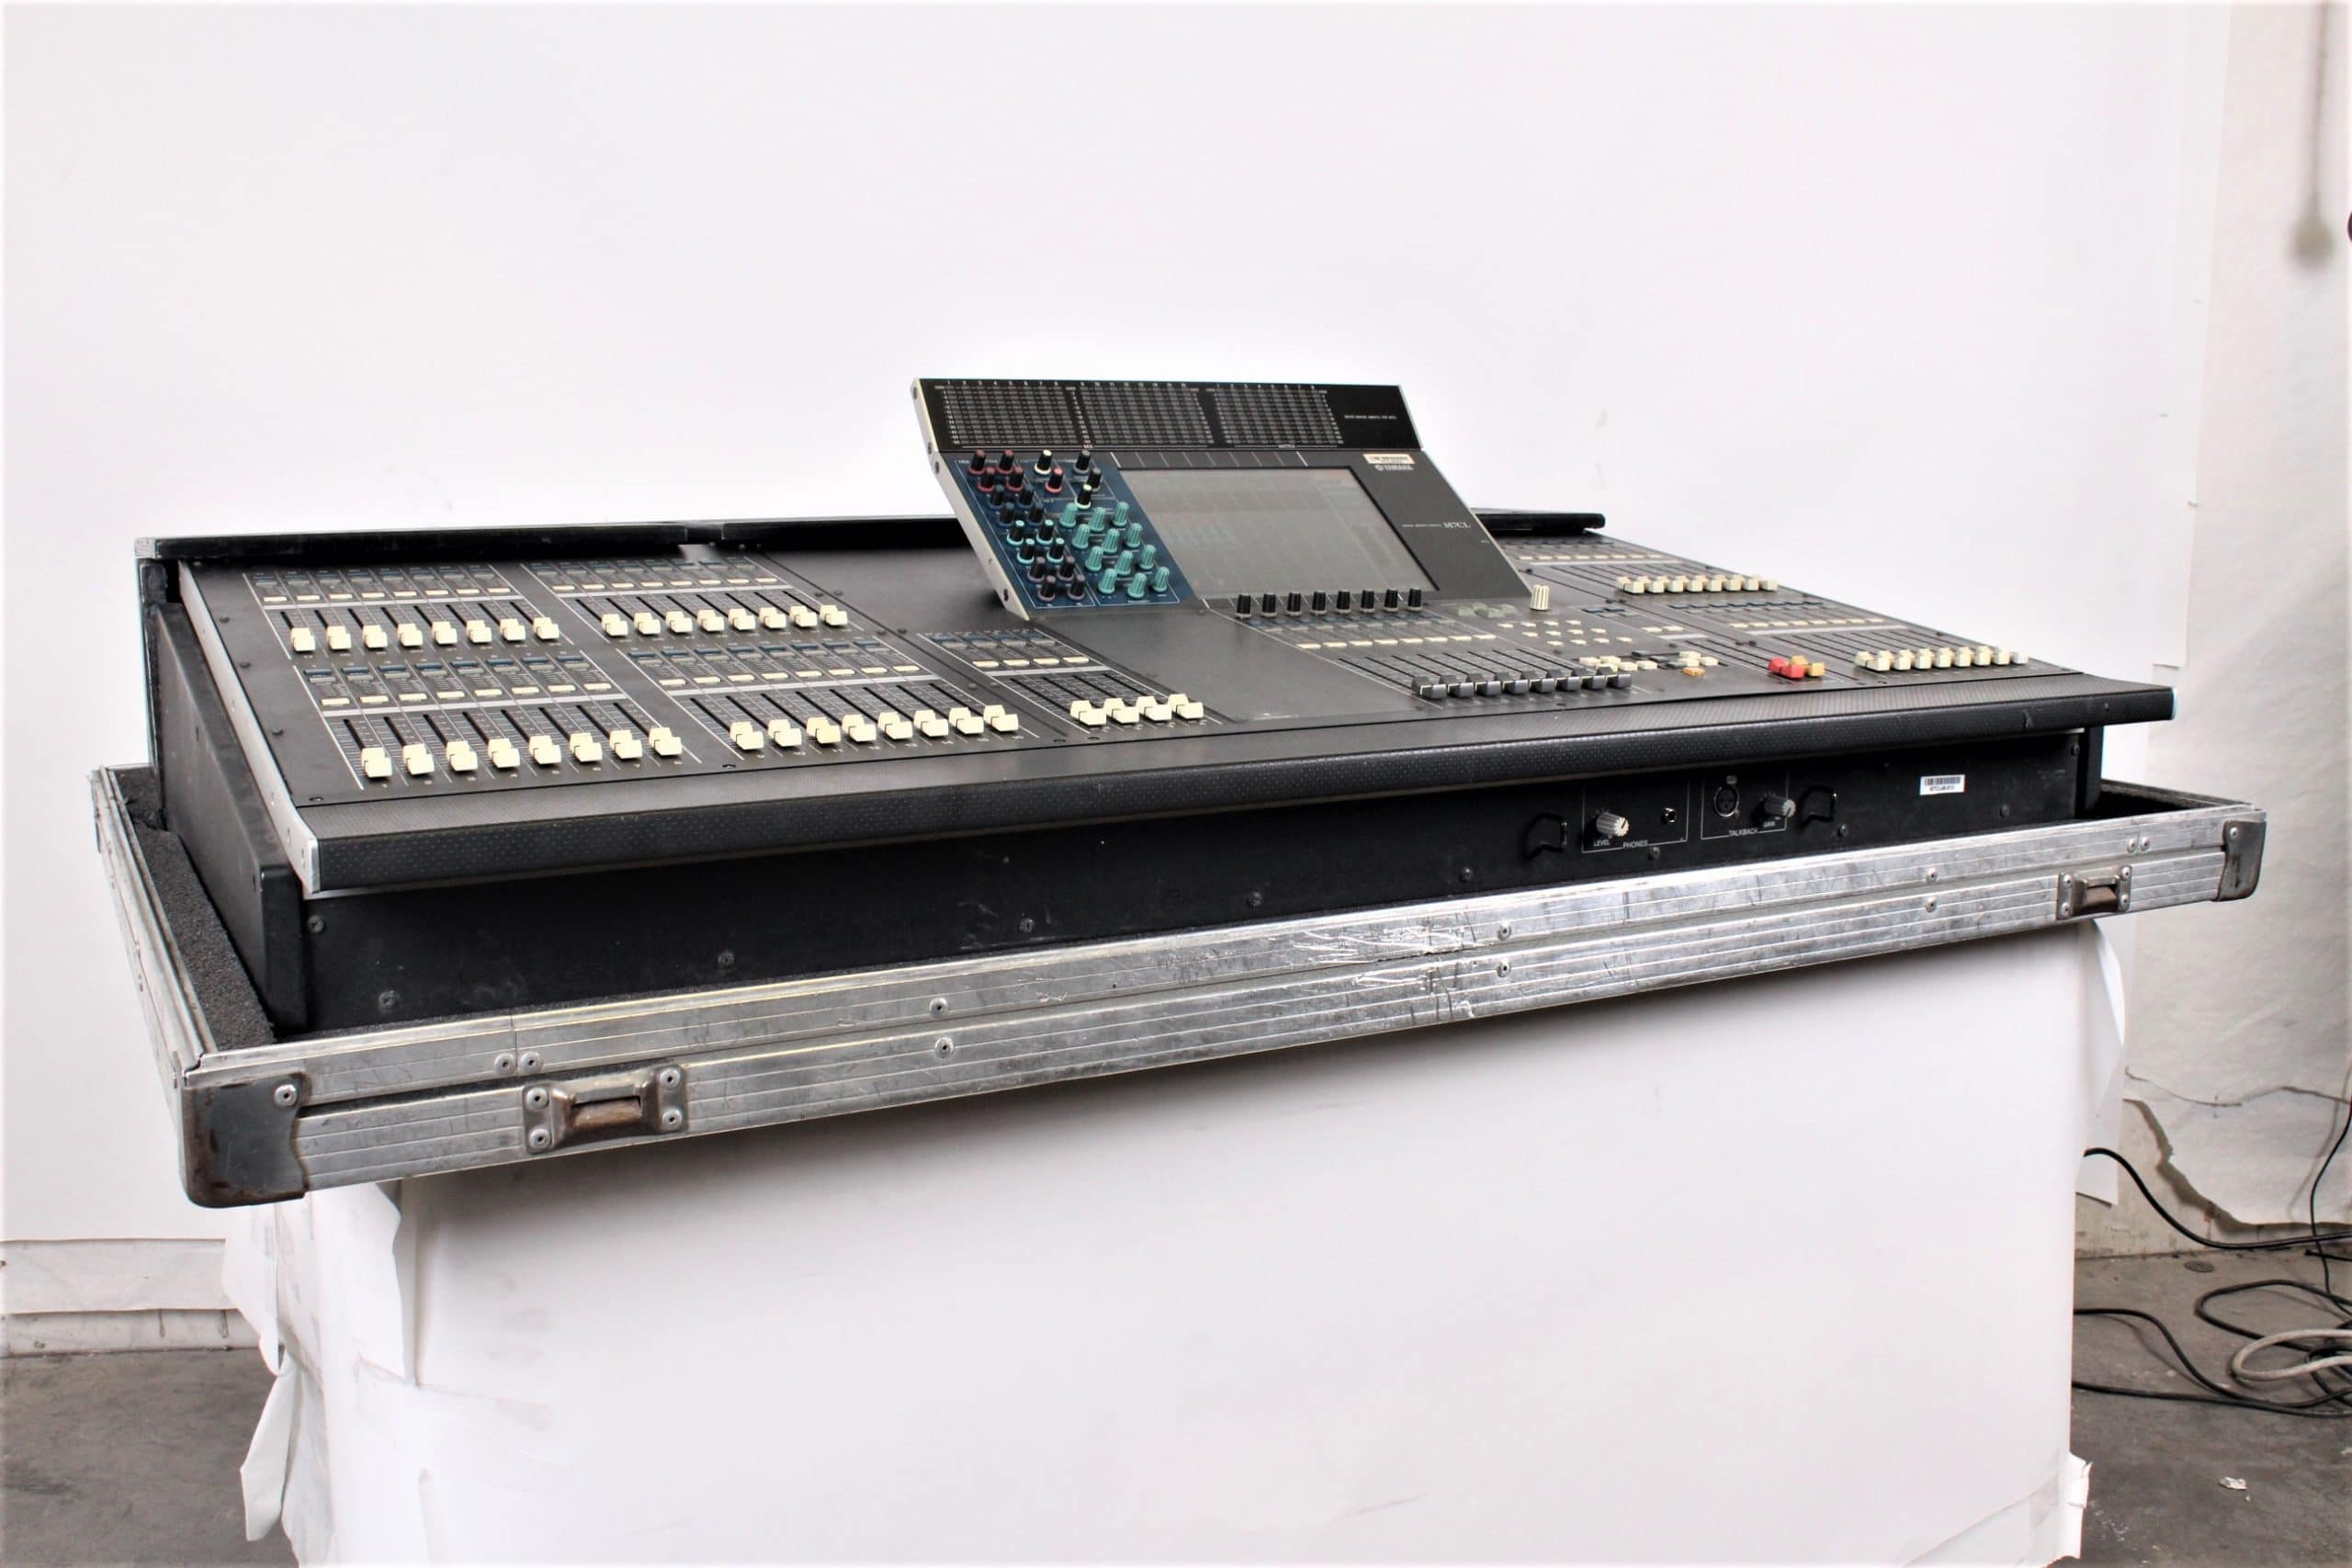 yamaha-m7cl-48-digital-audio-mixing-console-in-wheeled-road-case-1223-6-copy MAIN